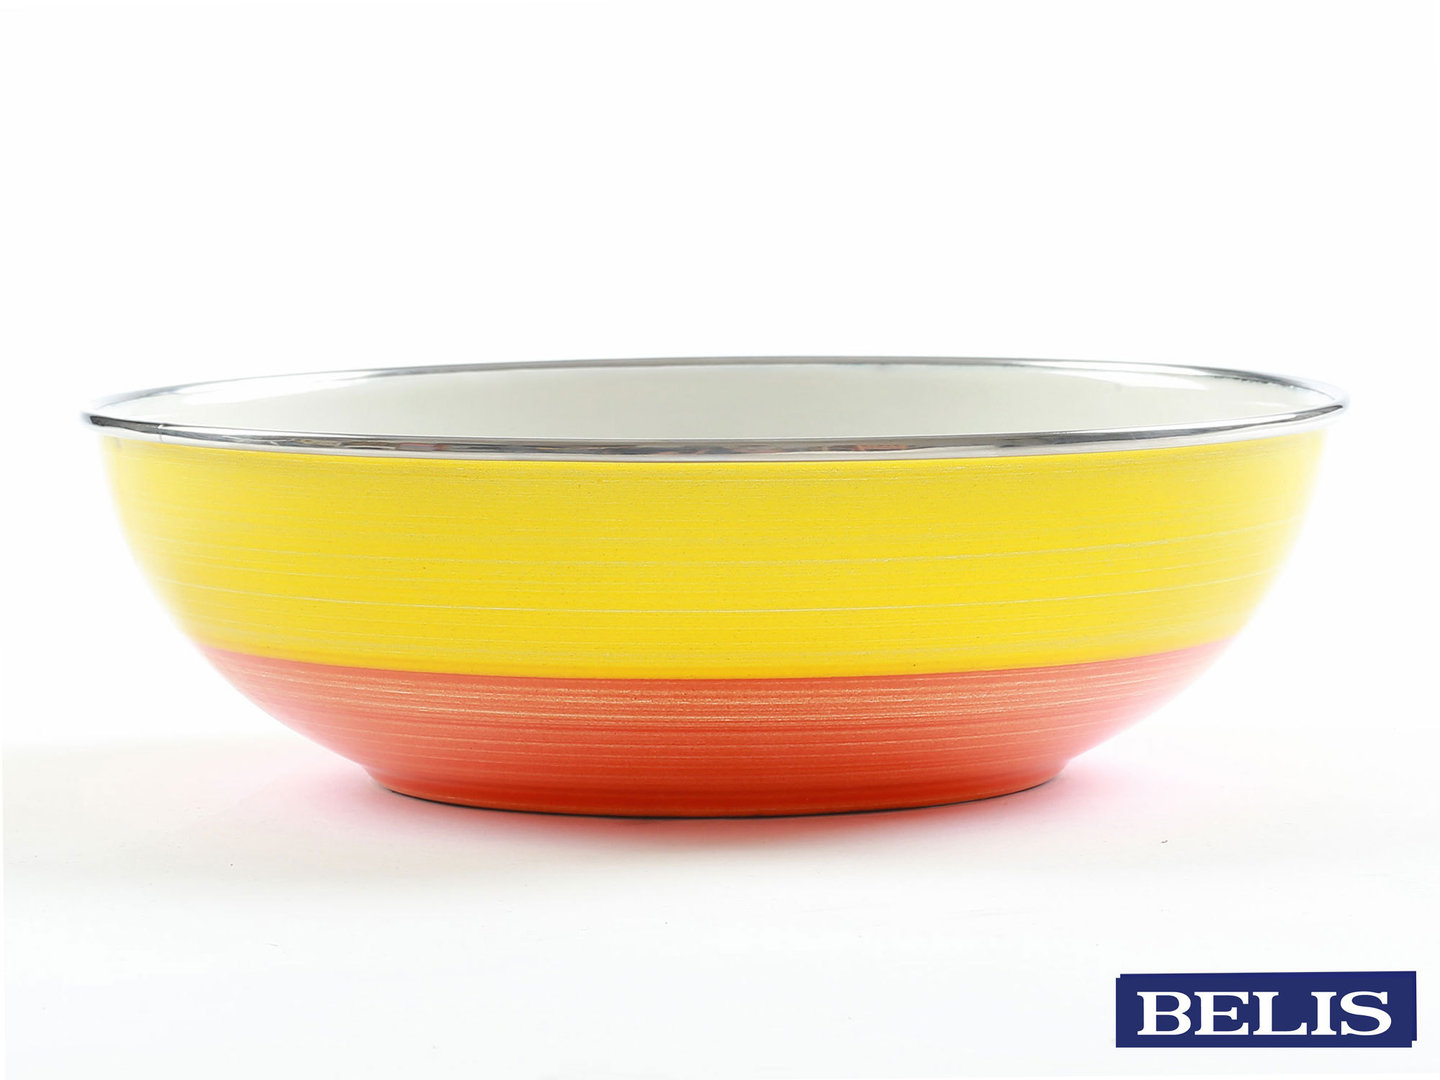 BELIS steel-enamel bowl ART SUMMER 26 cm